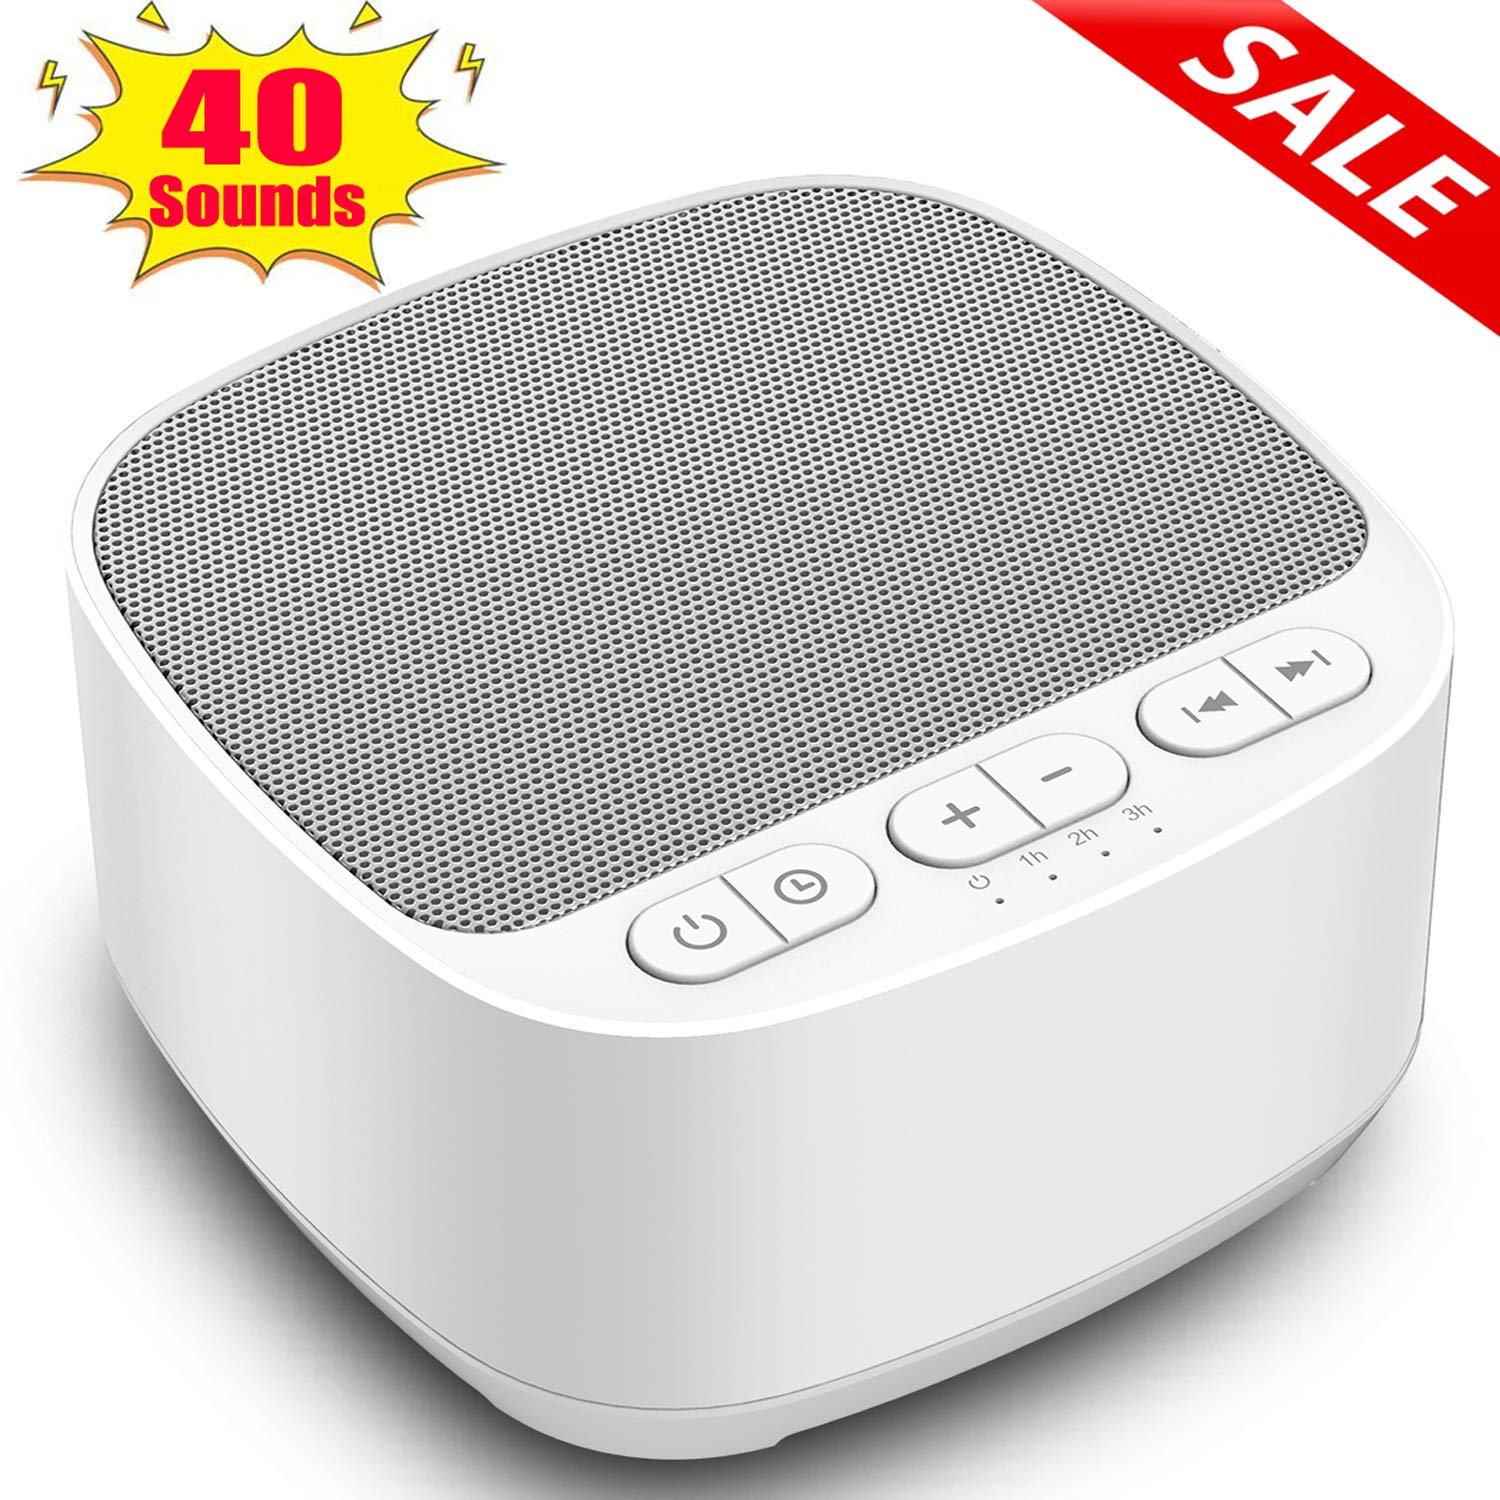 Magicteam Sleep Sound White Noise Machine with 40 Natural Soothing Sounds and Memory Function 32 Levels of Volume Powered by AC or USB and Sleep Timer Sound Therapy for Baby Kids Adults White